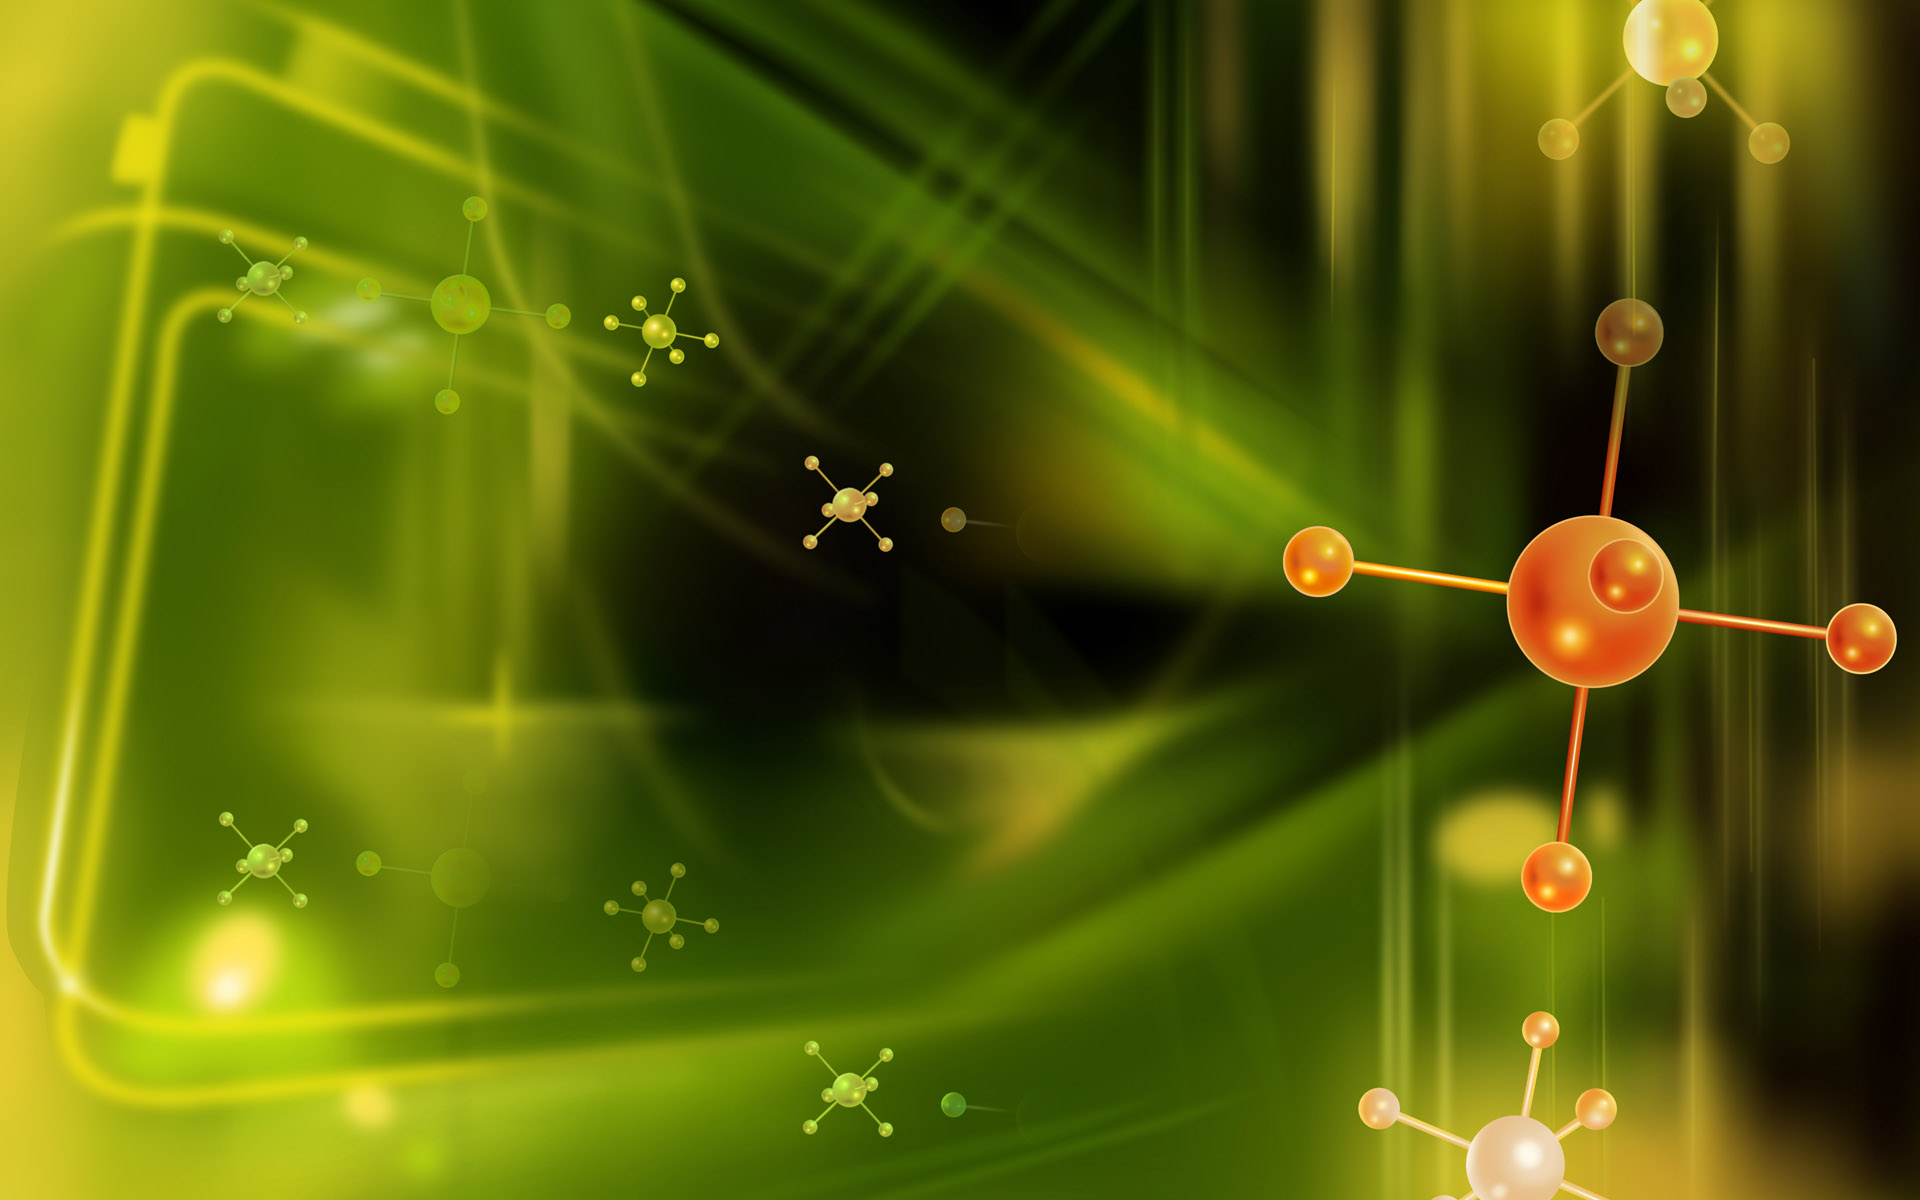 Colorful background of high-definition 21325